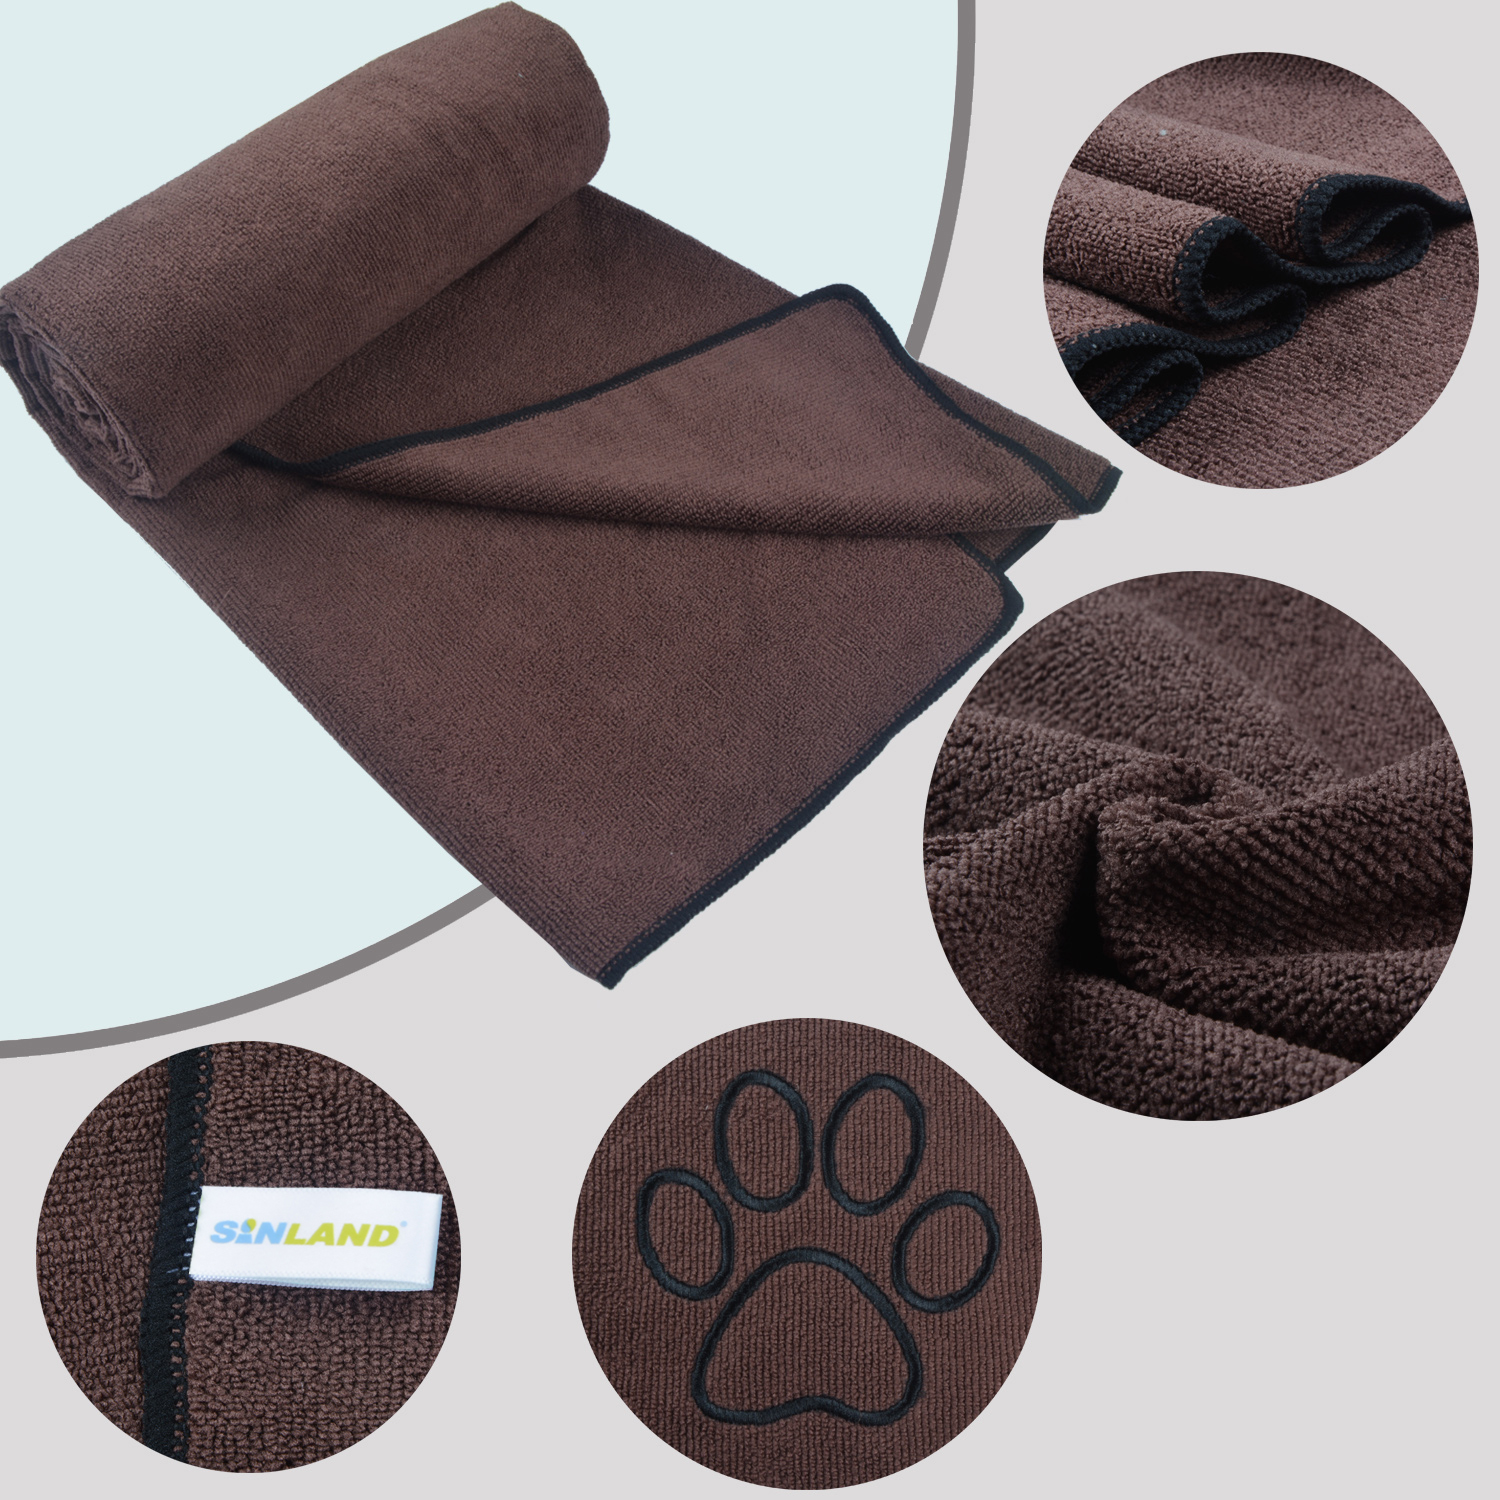 Sunland pet products high water absorbency soft pet towel